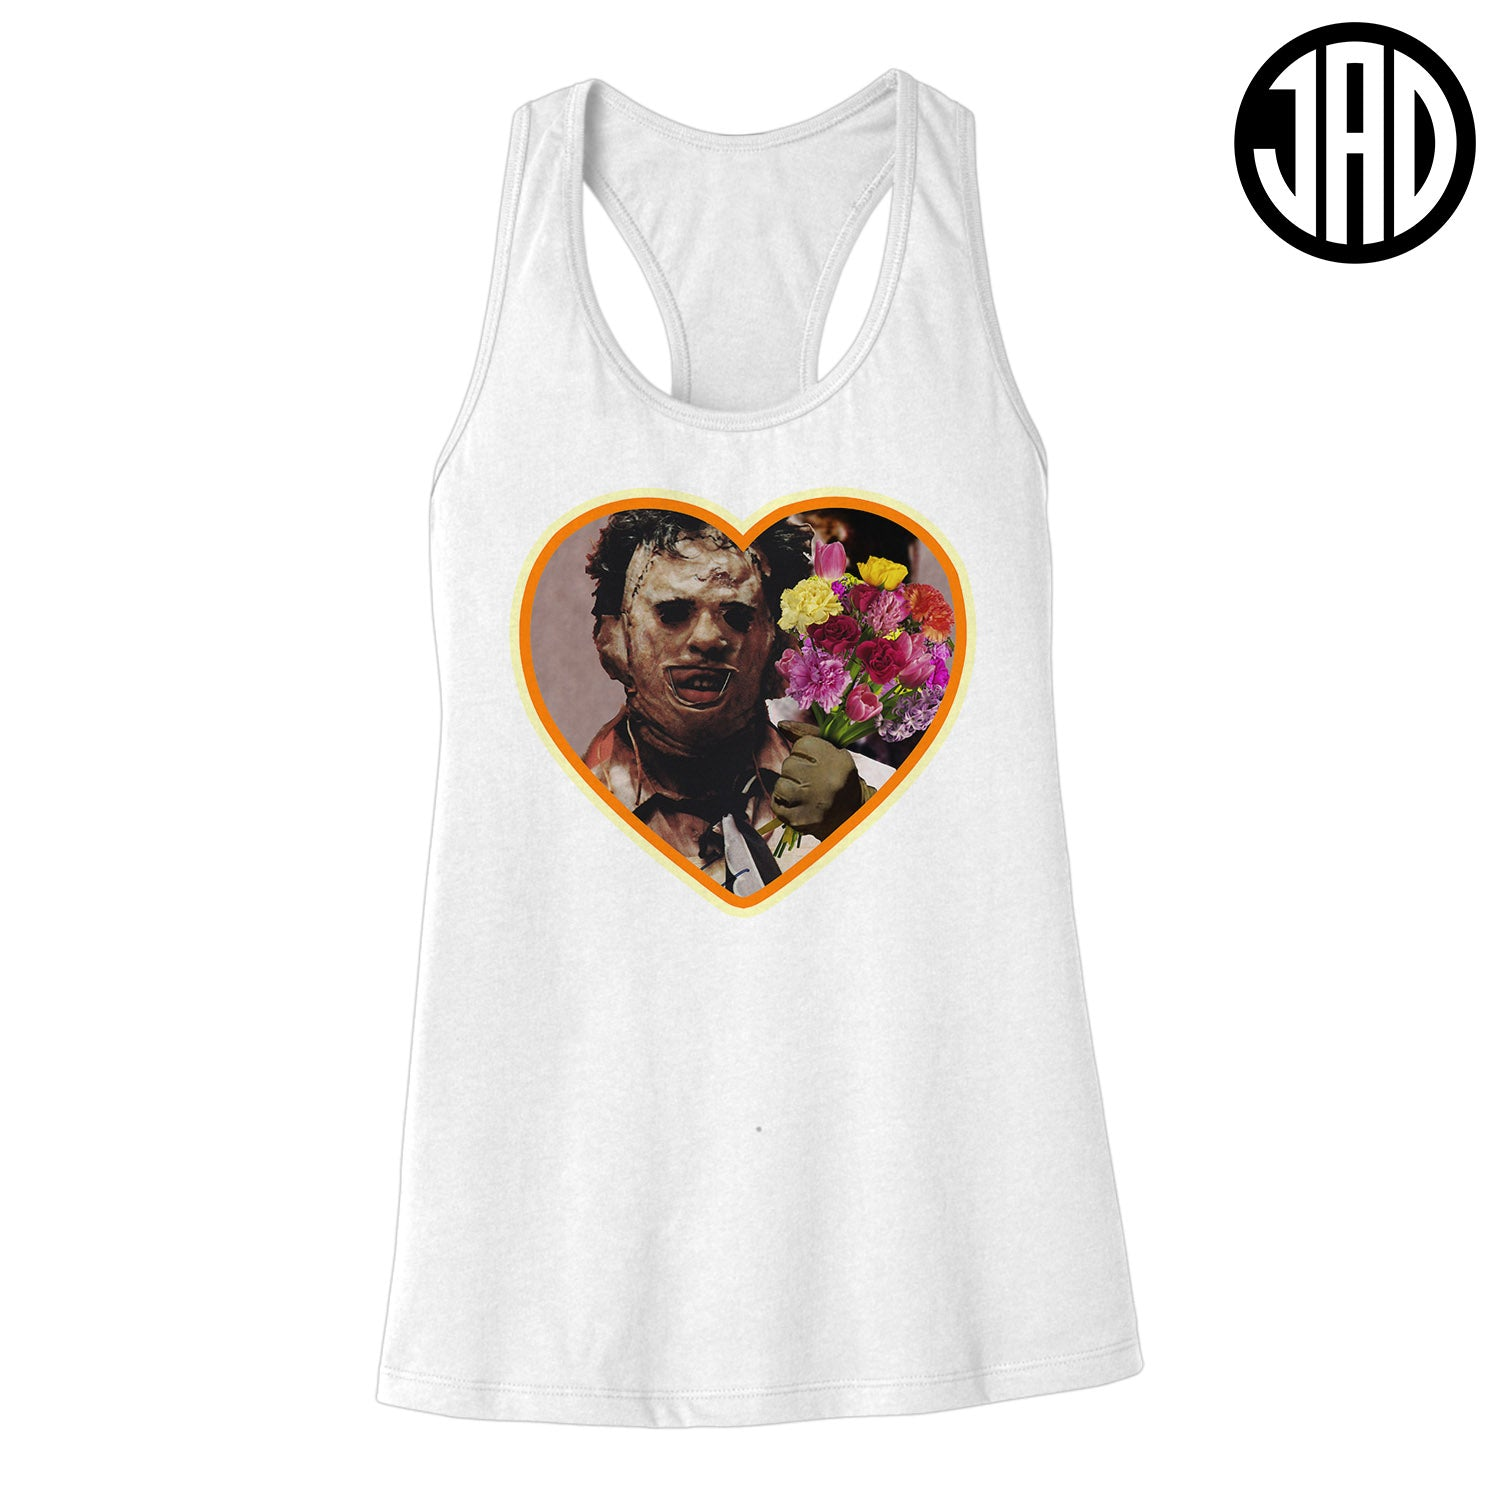 V Day Massacre - Women's Racerback Tank